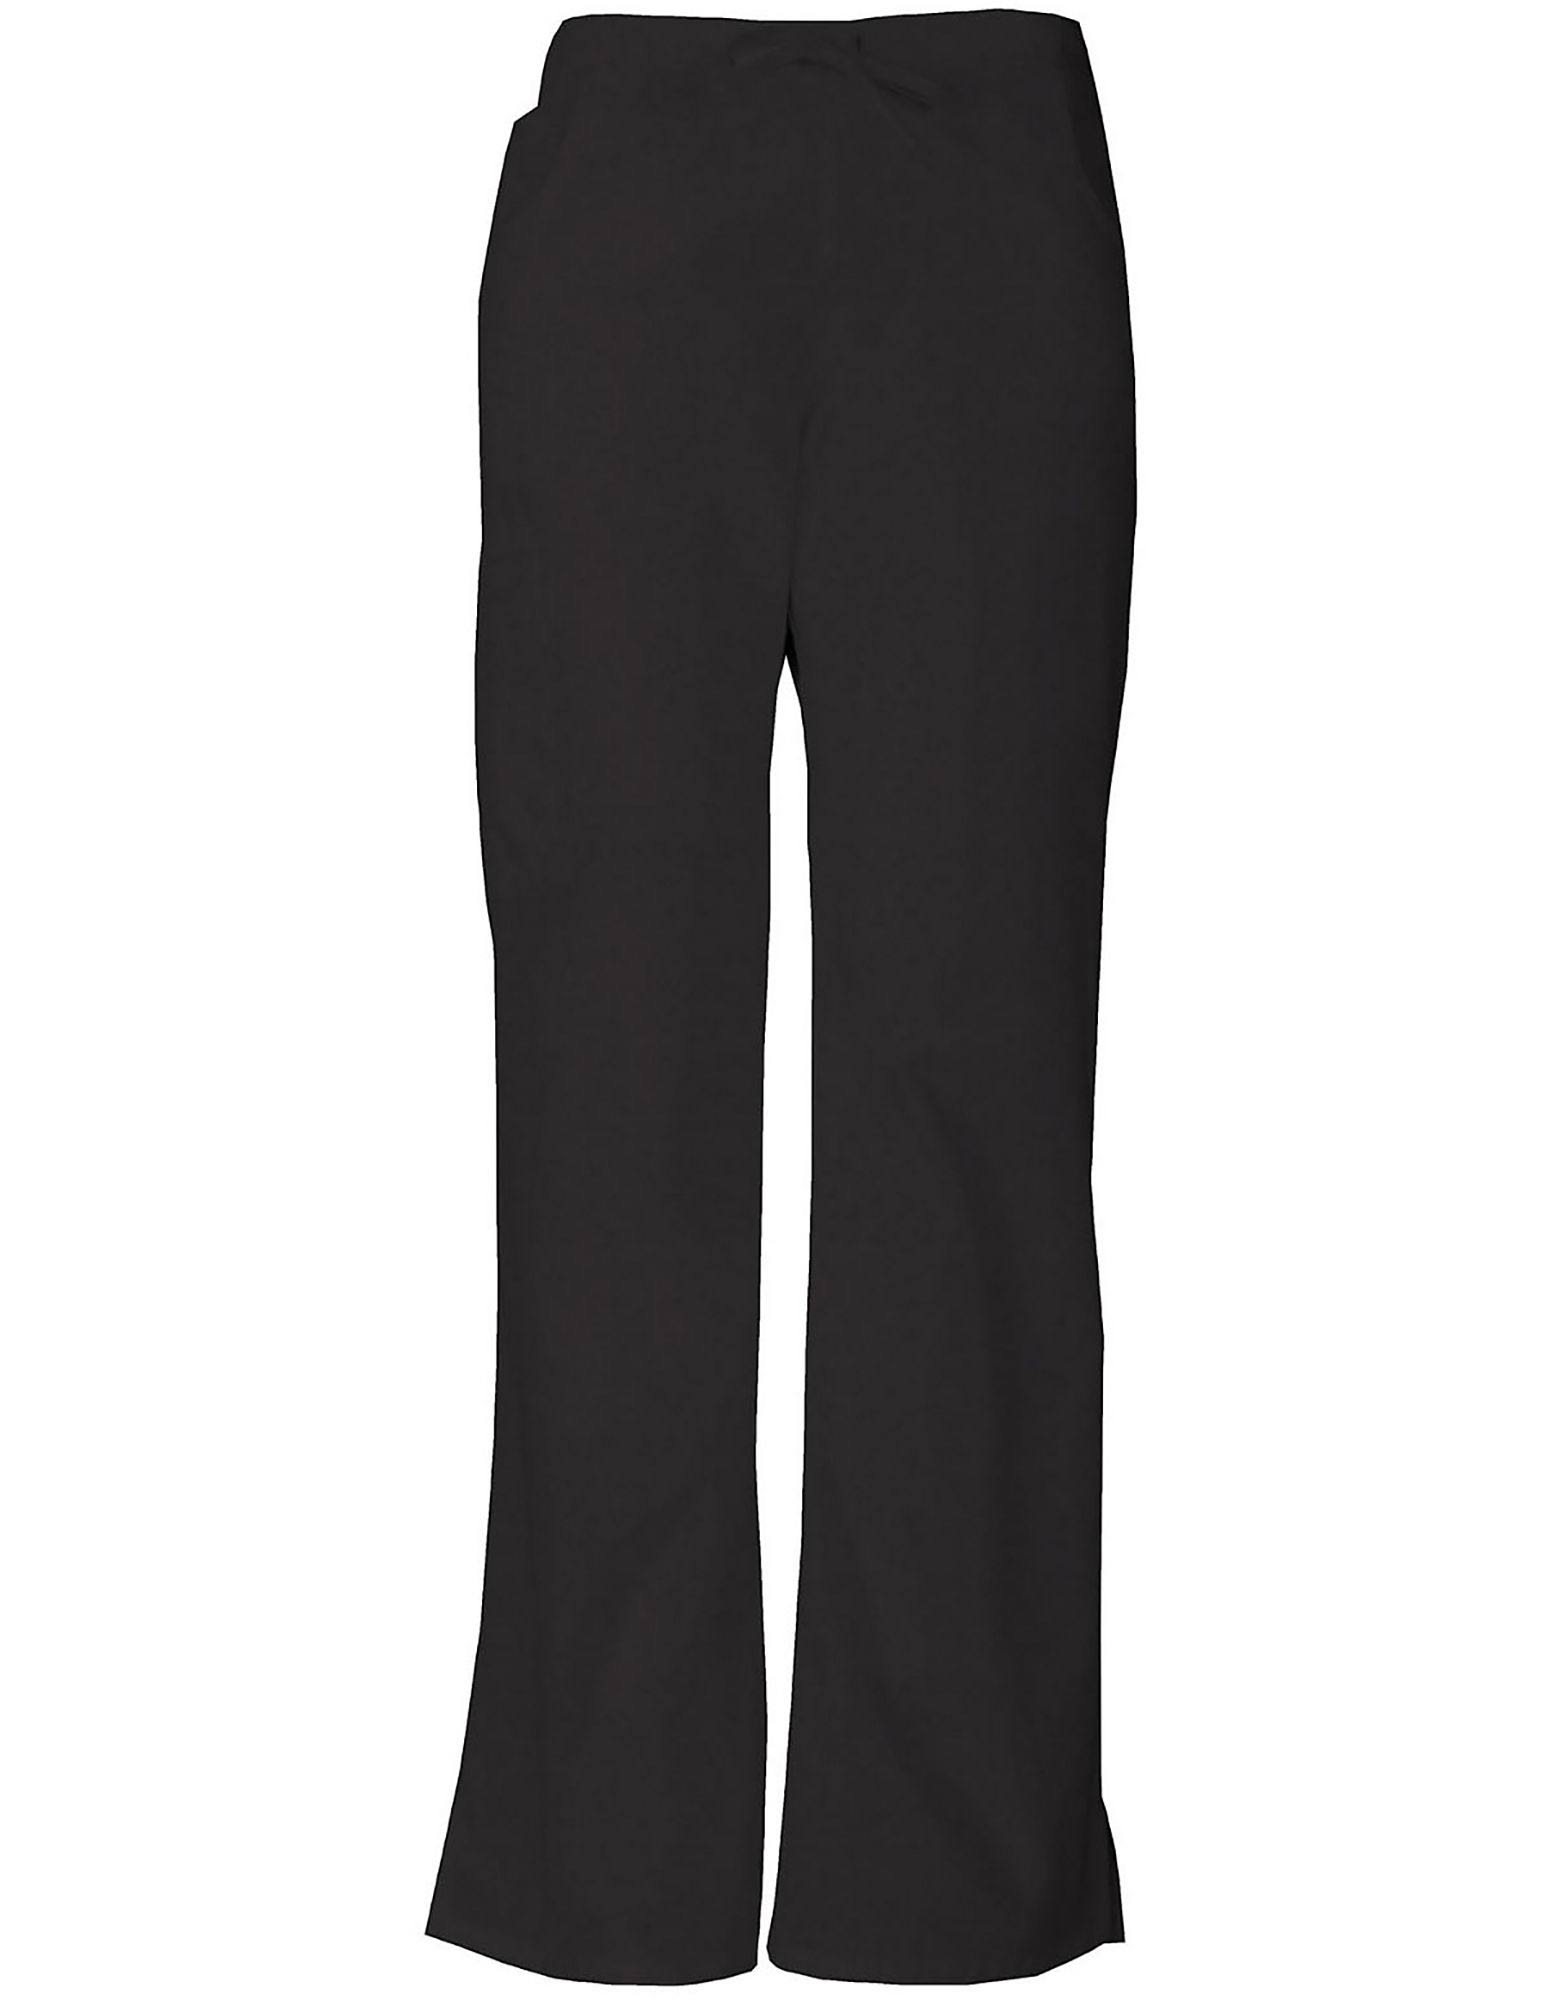 Dickies Women's Petite EDS Signature Scrubs Drawstring Cargo Pants - Black, Medium Petite